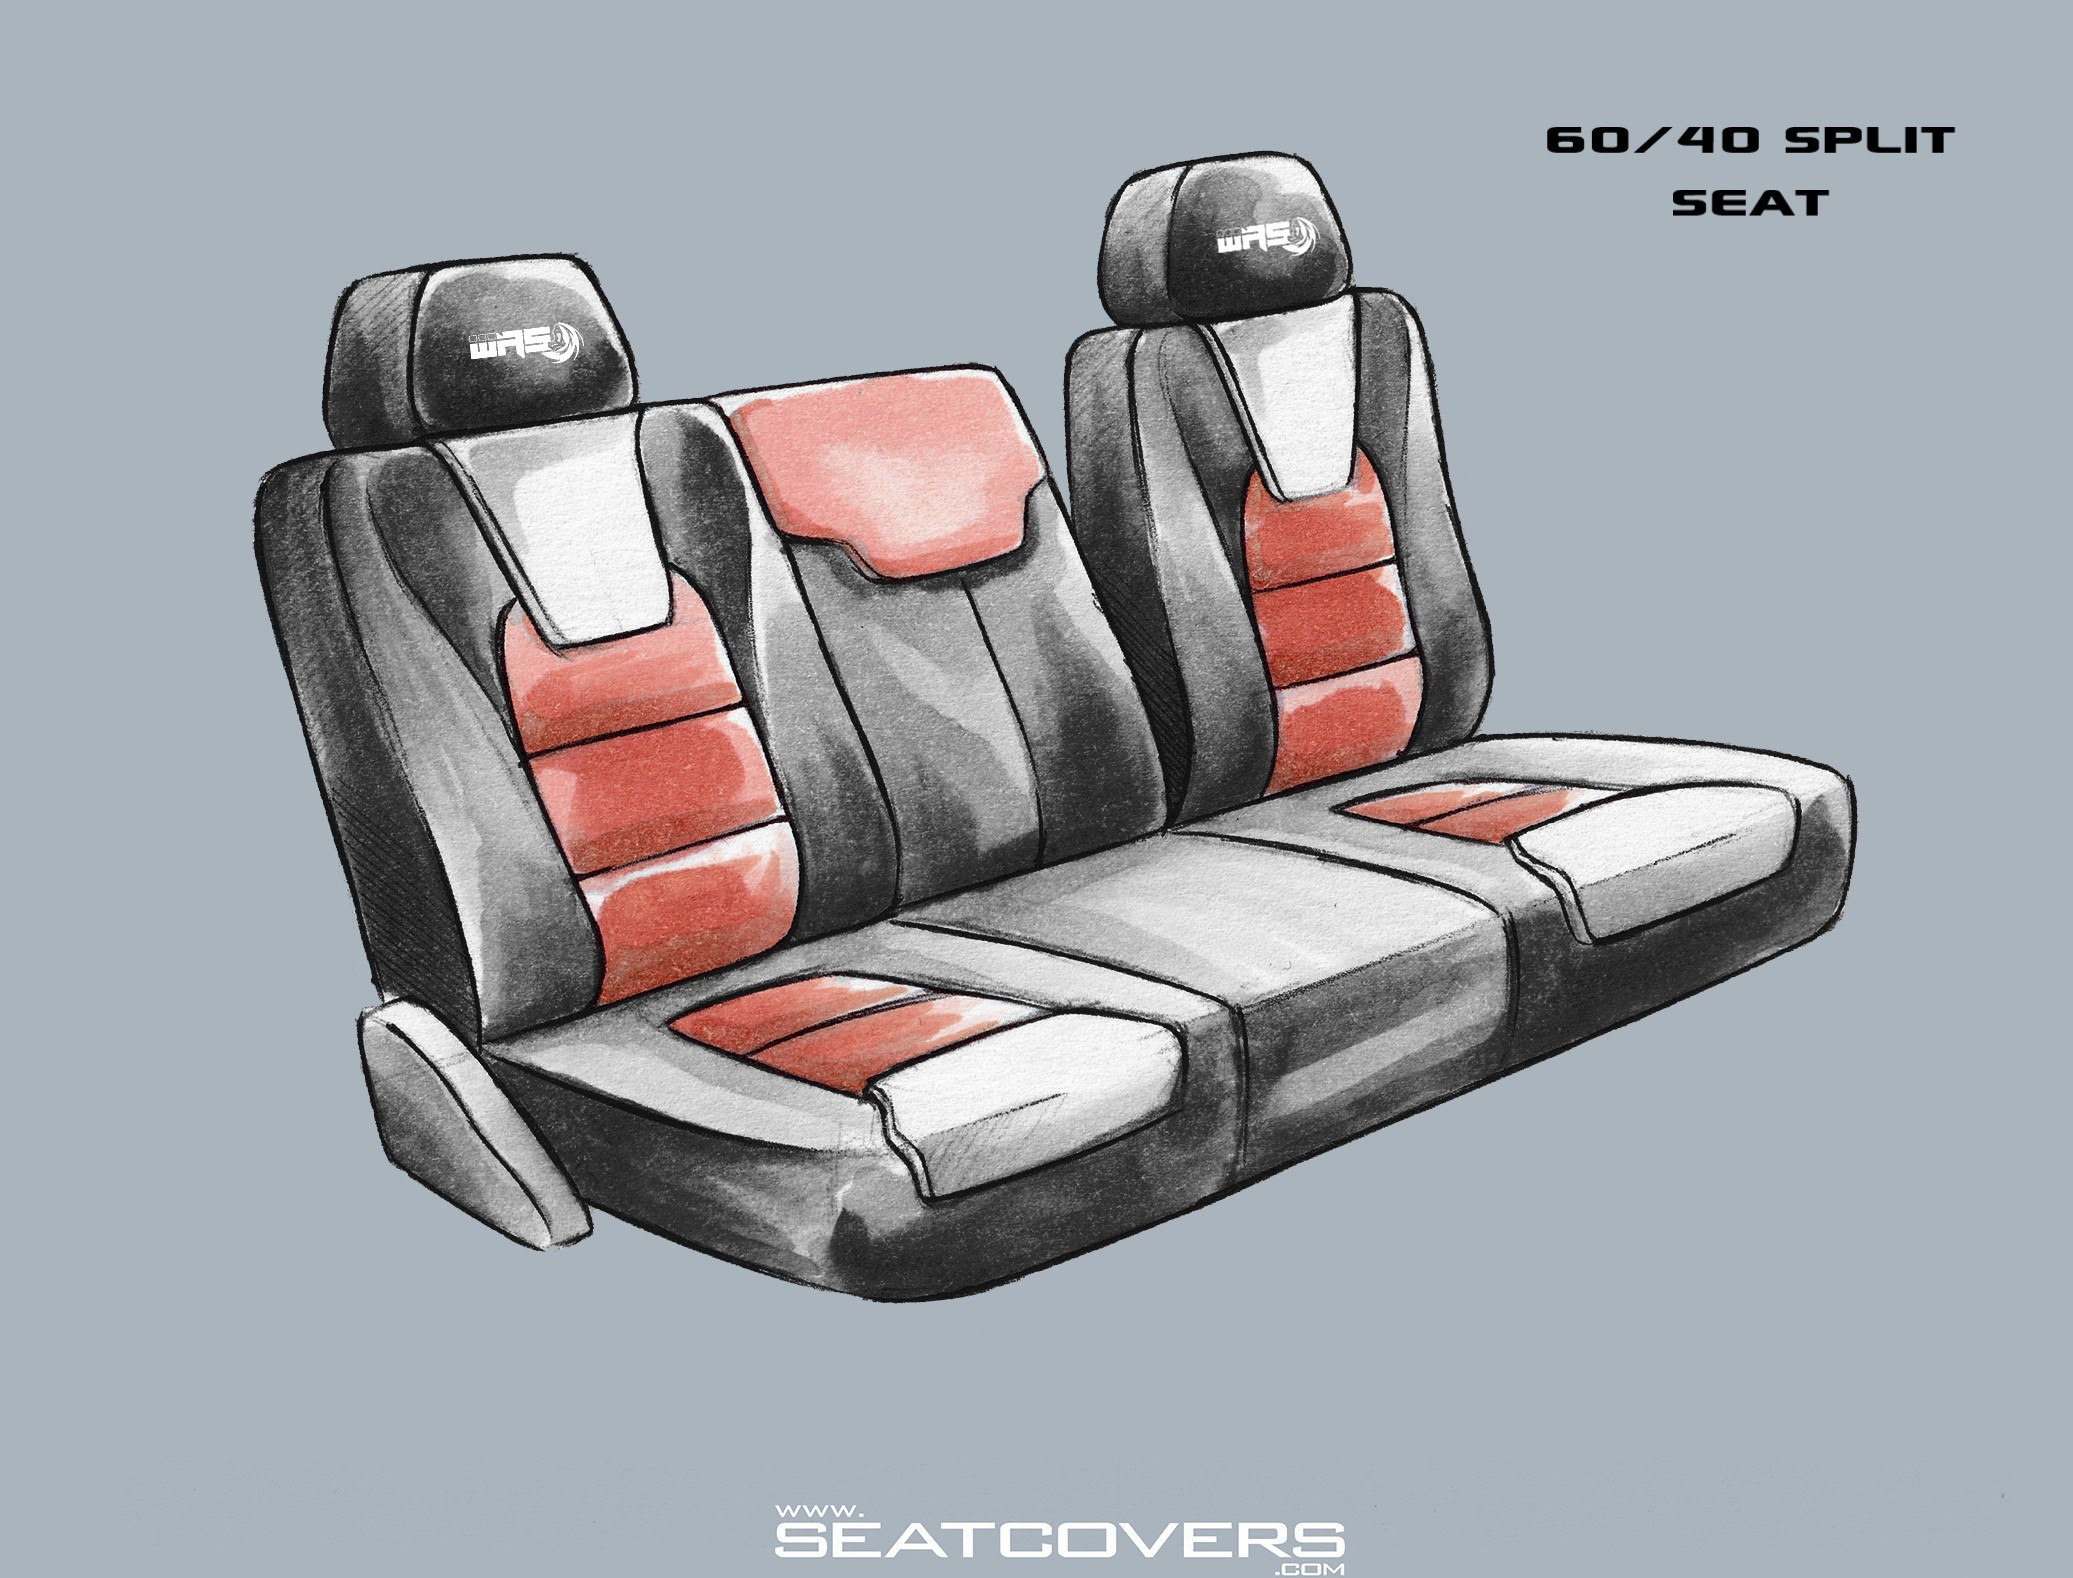 2011- 2013 Ford F750 Front seat covers www.seatcovers.com